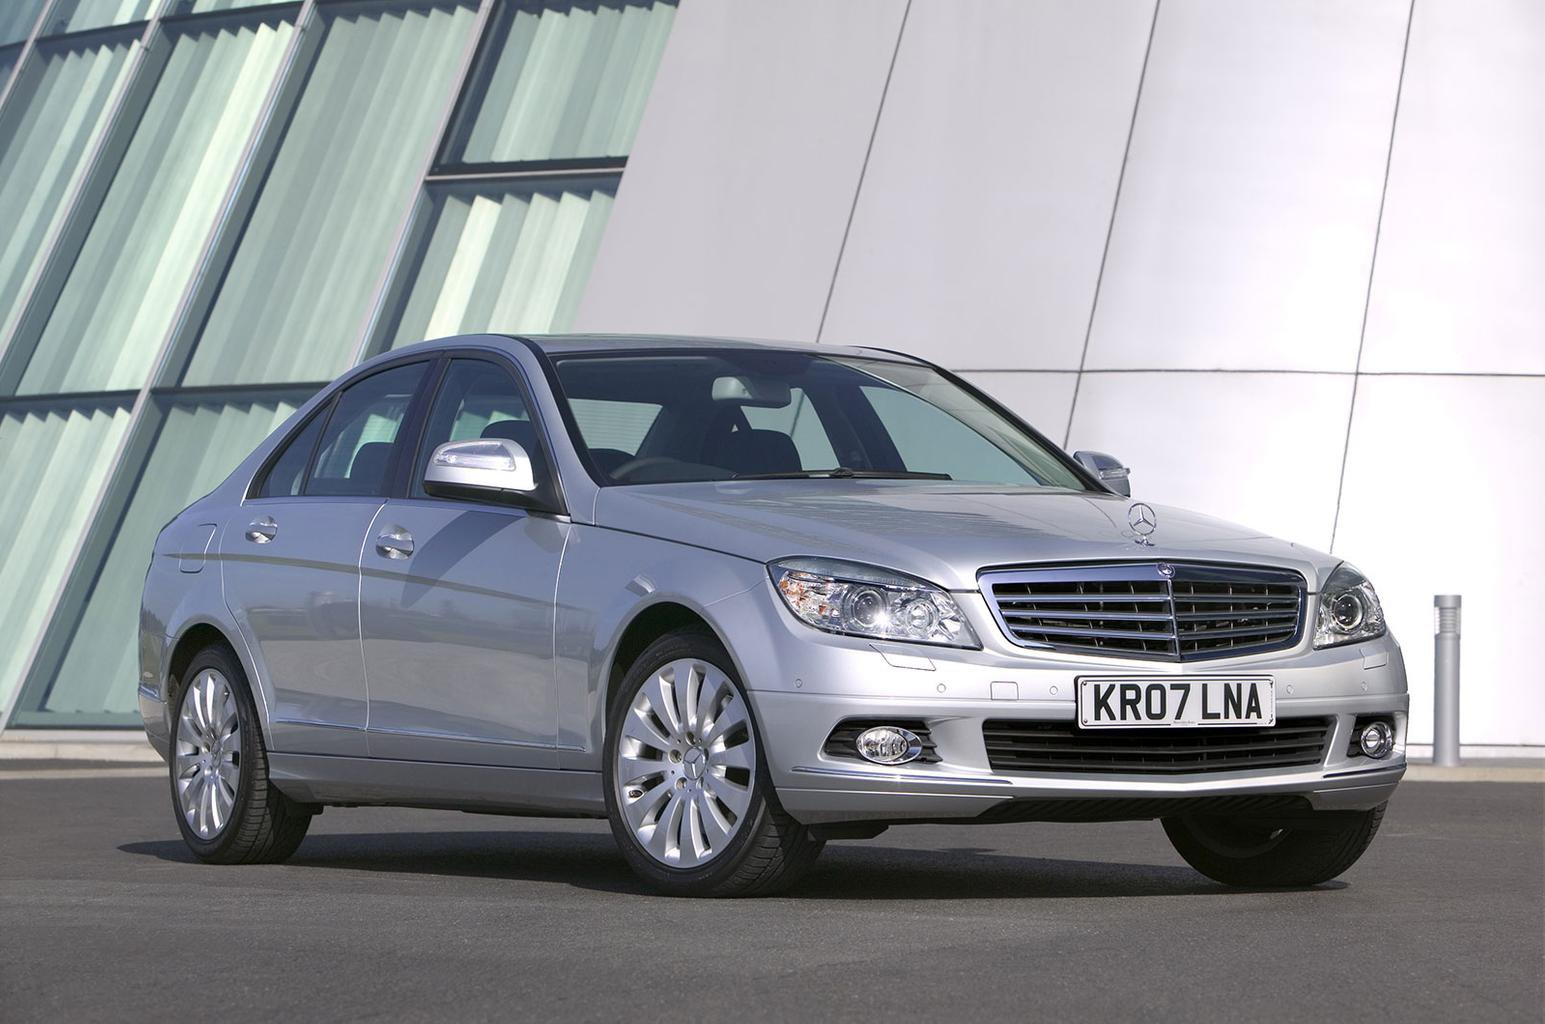 Used Mercedes-Benz C-class saloon